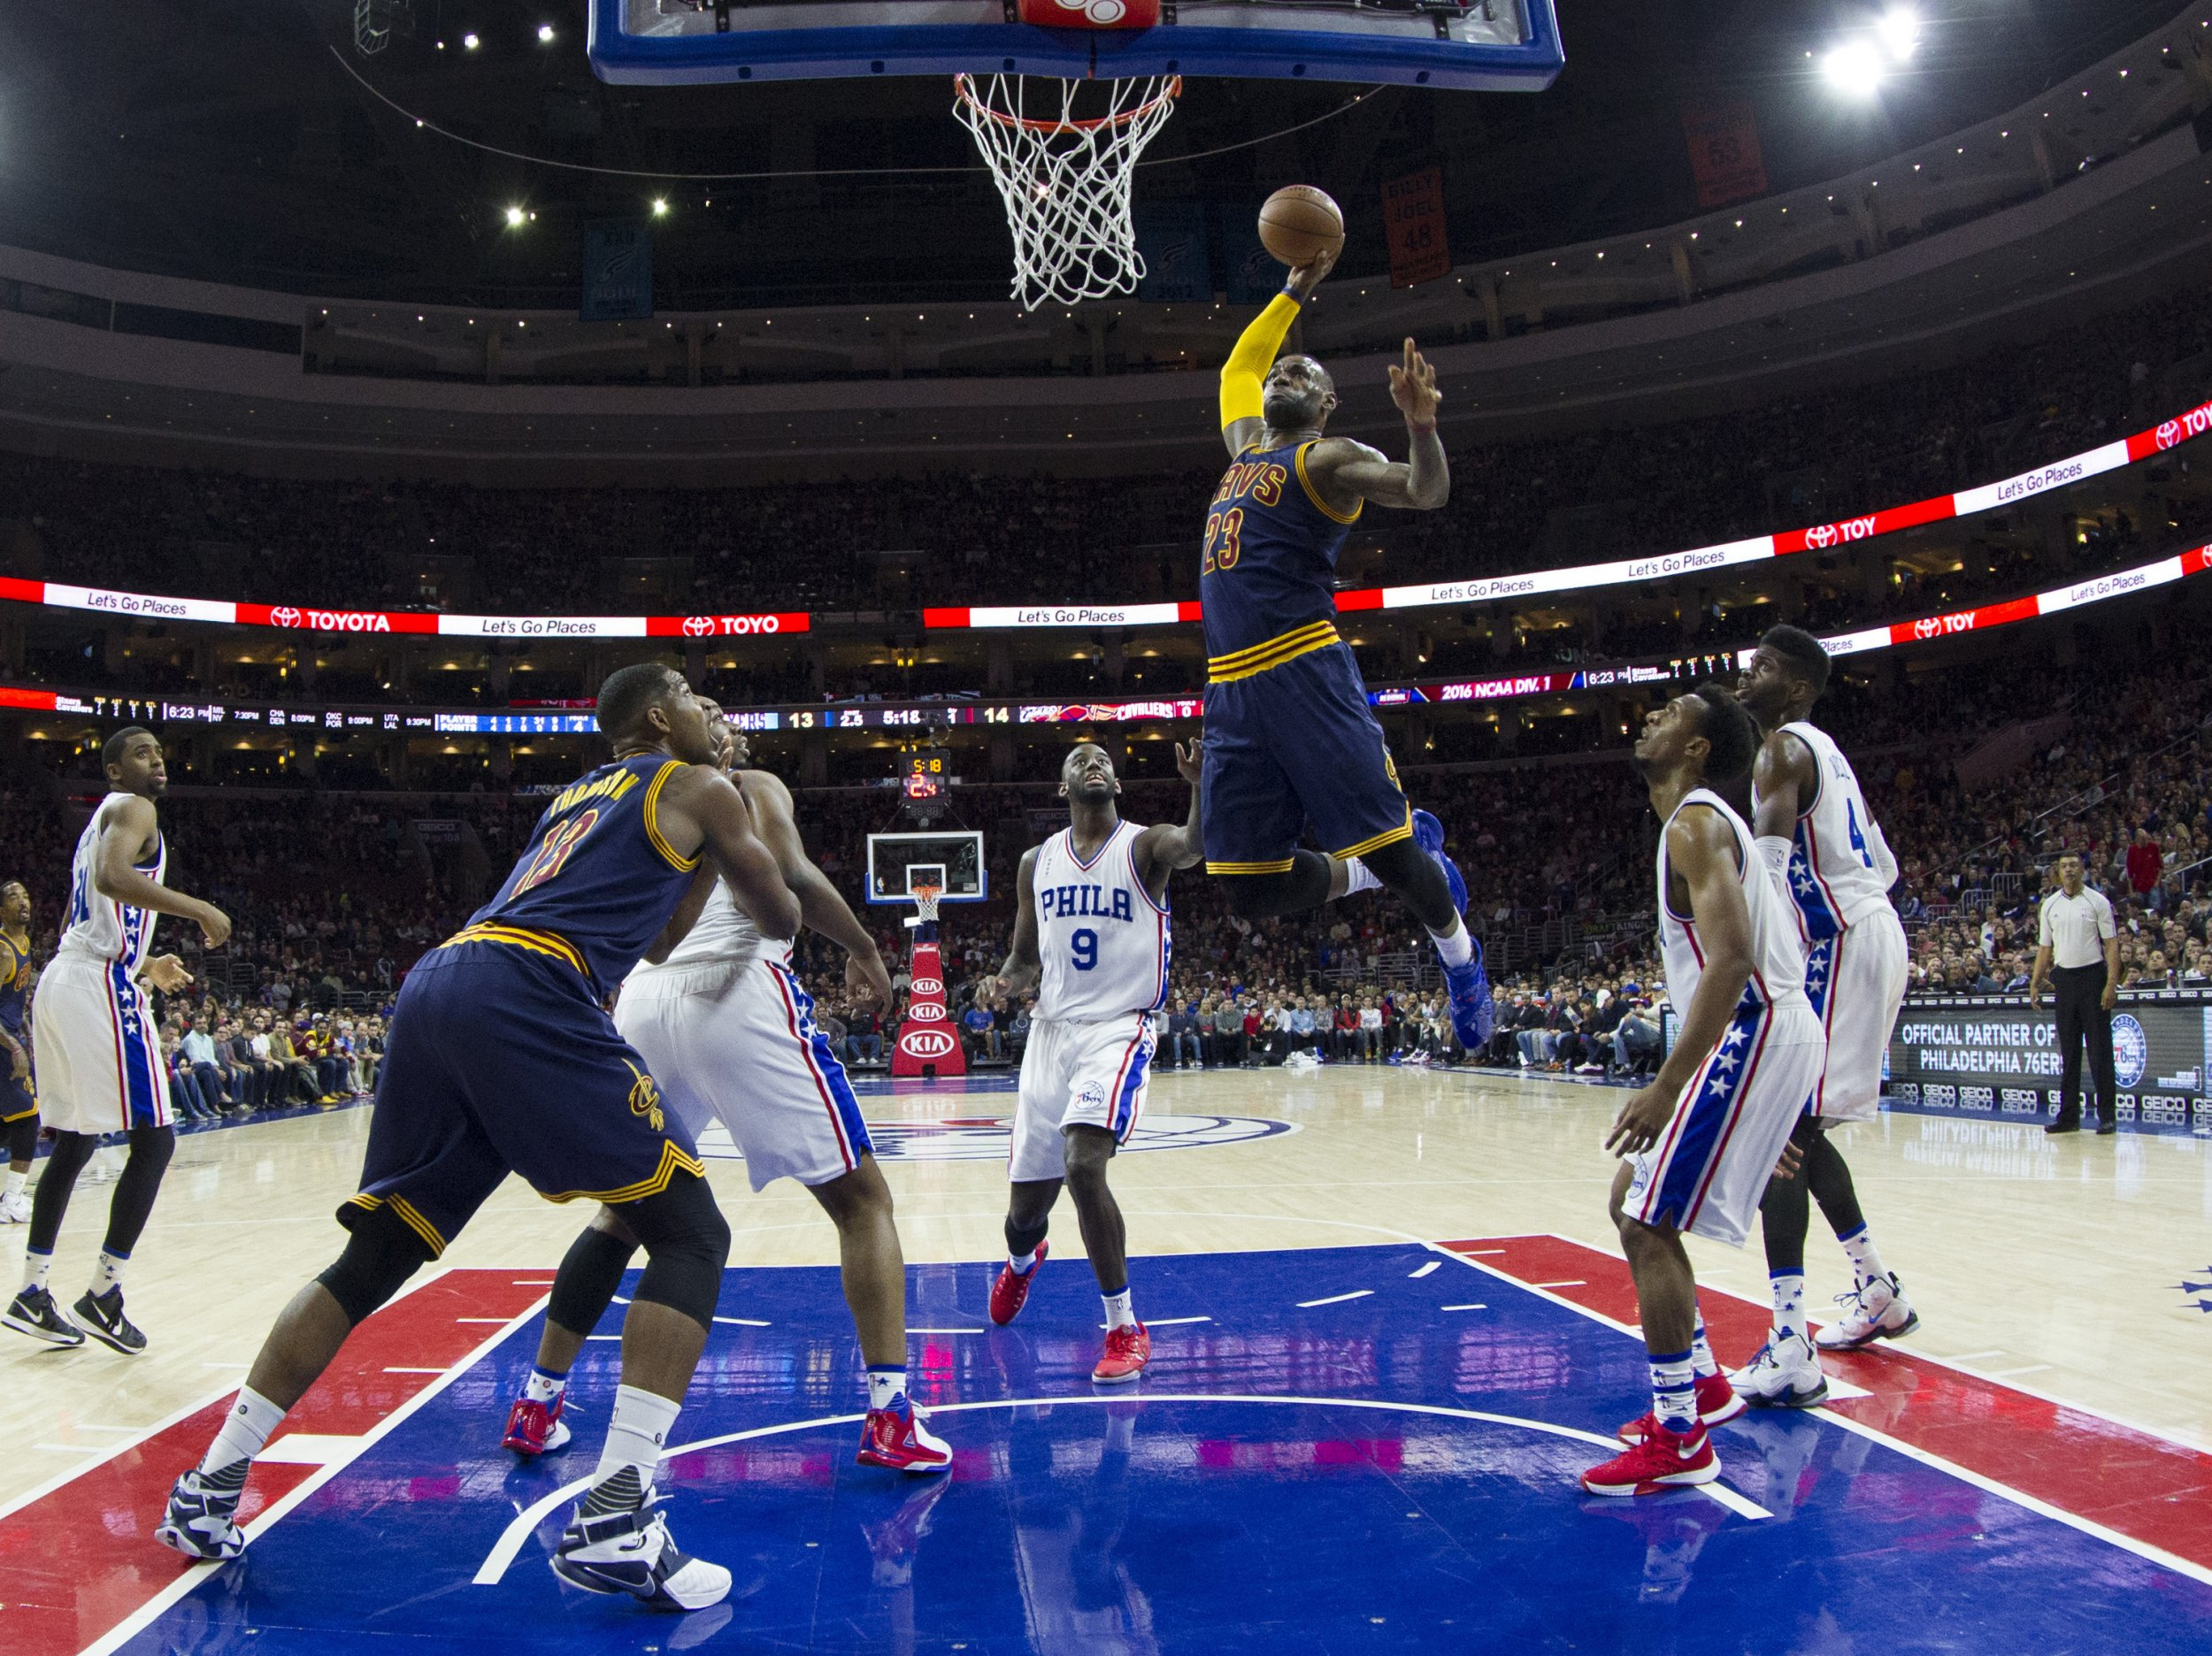 70d330614 LeBron James of the Cleveland Cavaliers dunks the ball against the  Philadelphia 76ers on January 10